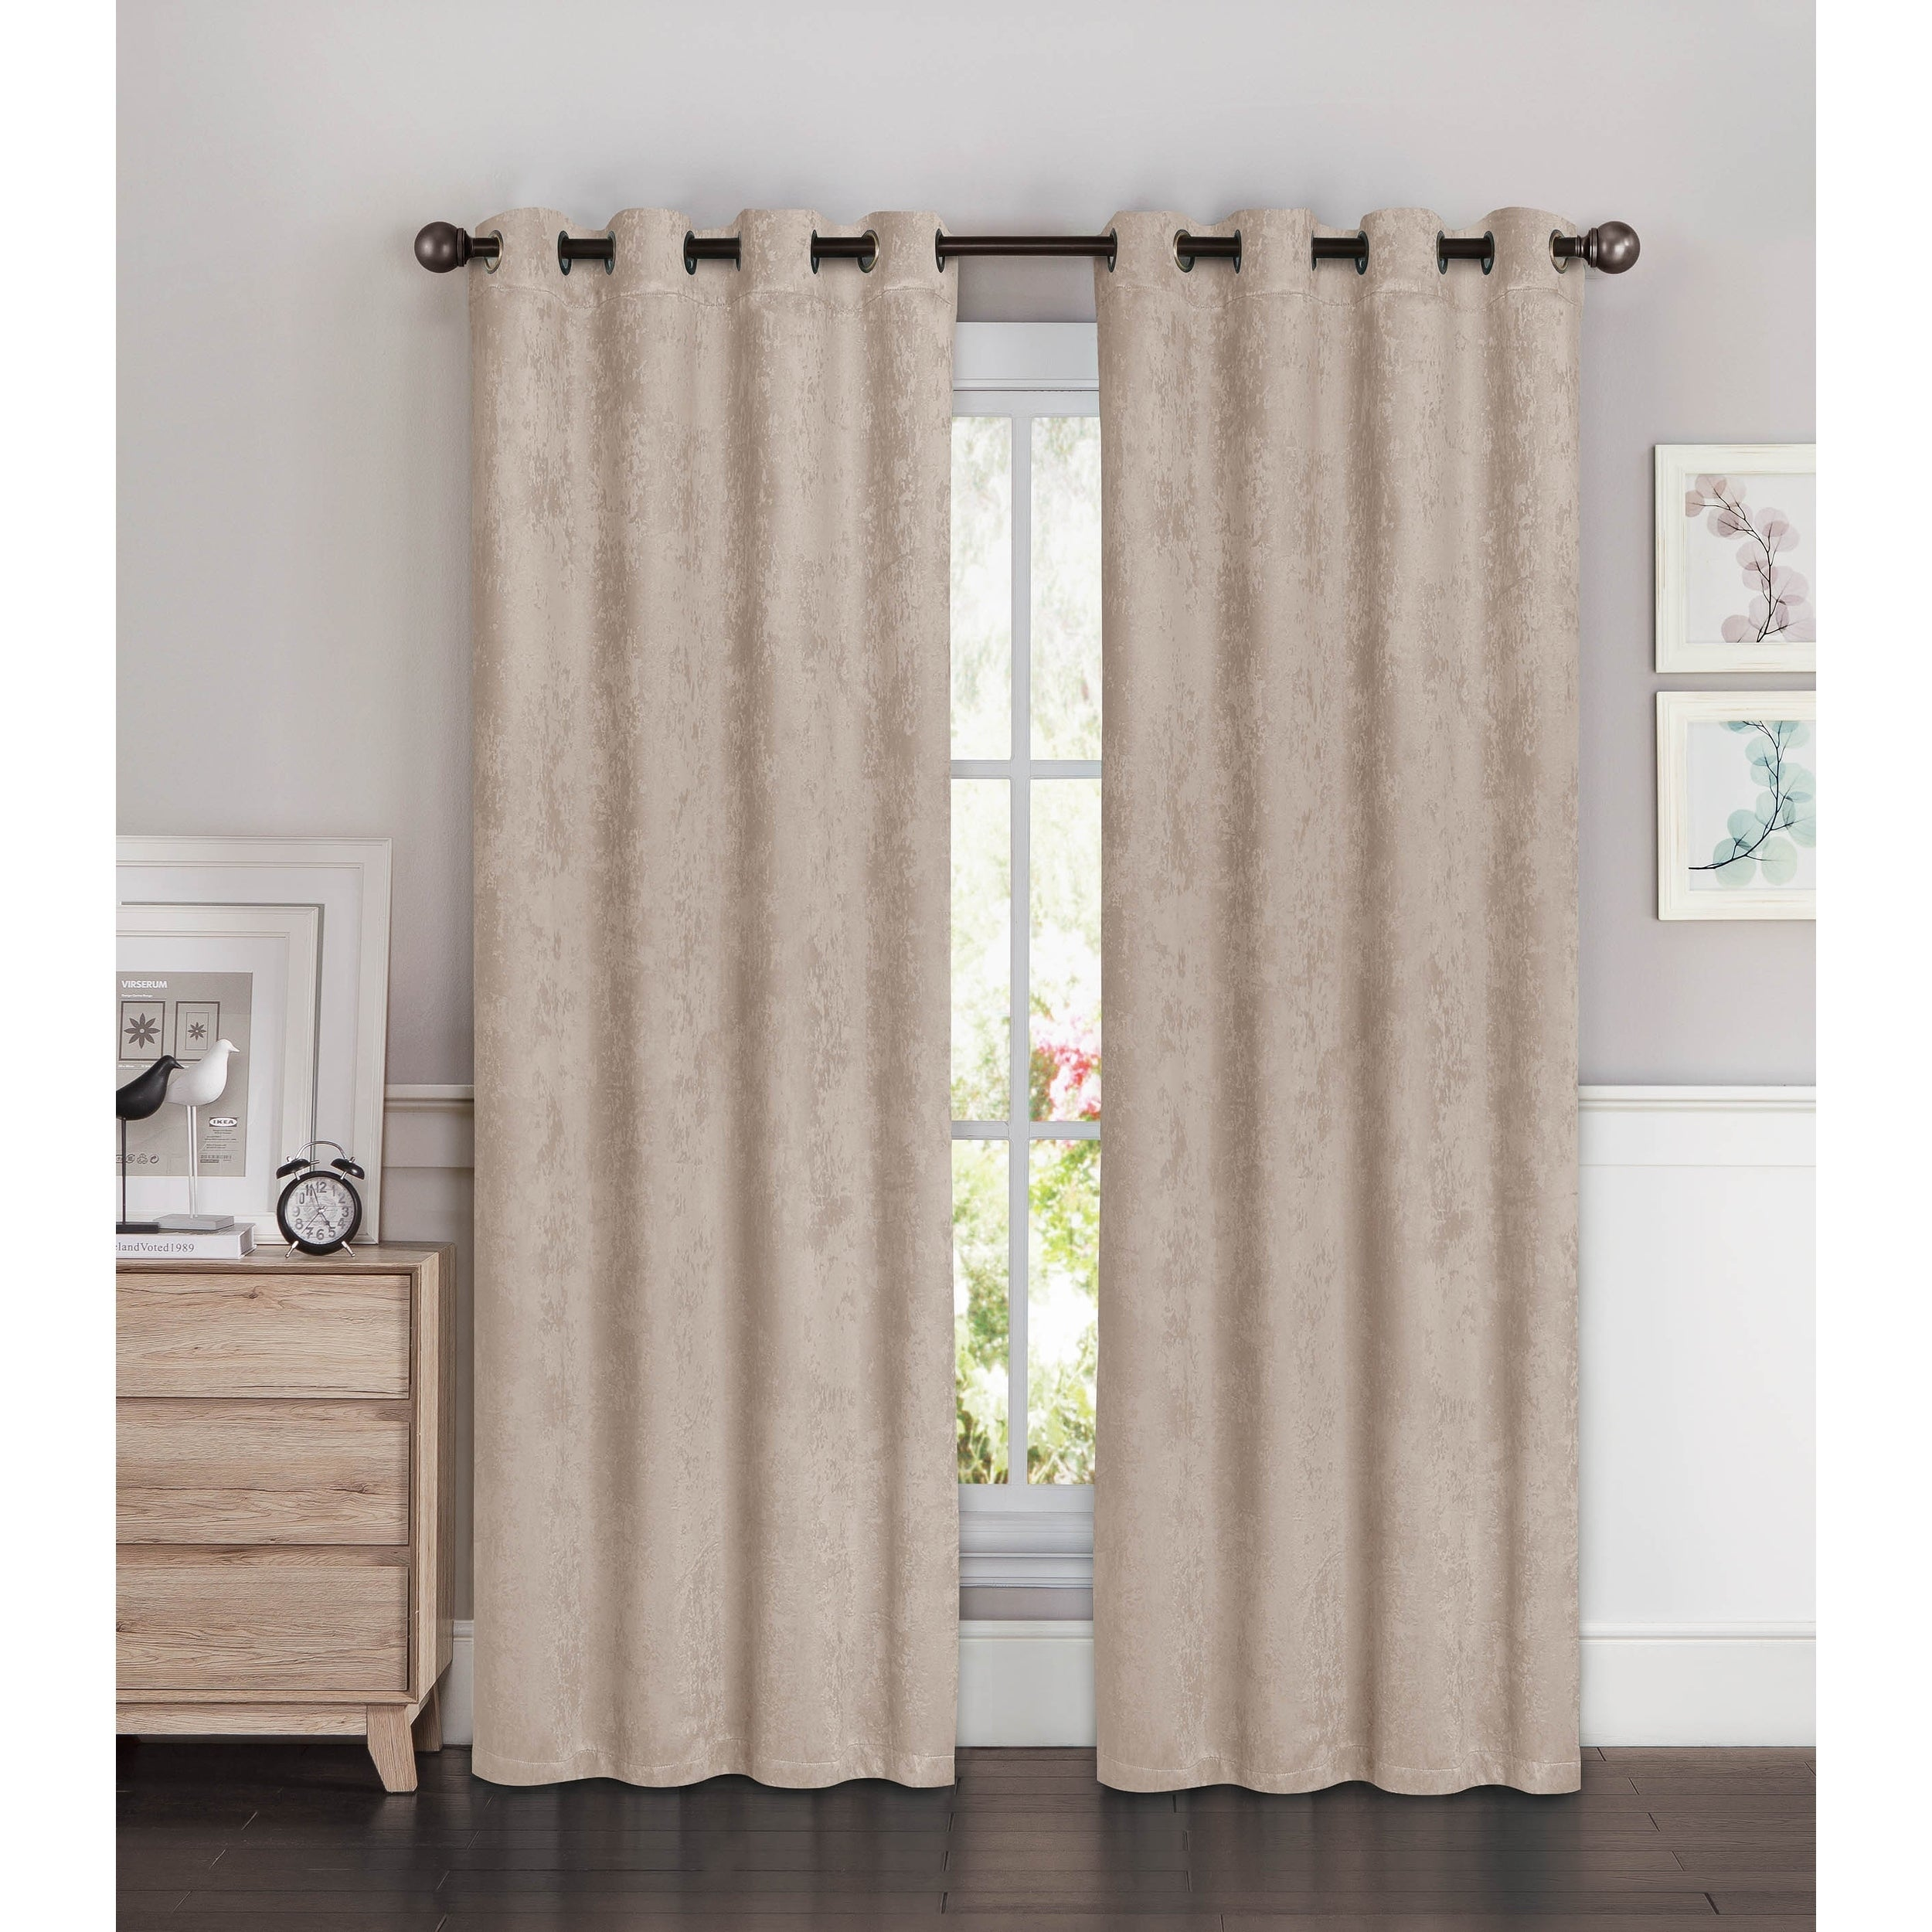 Shop Bella Luna Faux Suede Room Darkening Extra Wide 96 Inch Grommet Curtain Panel Pair